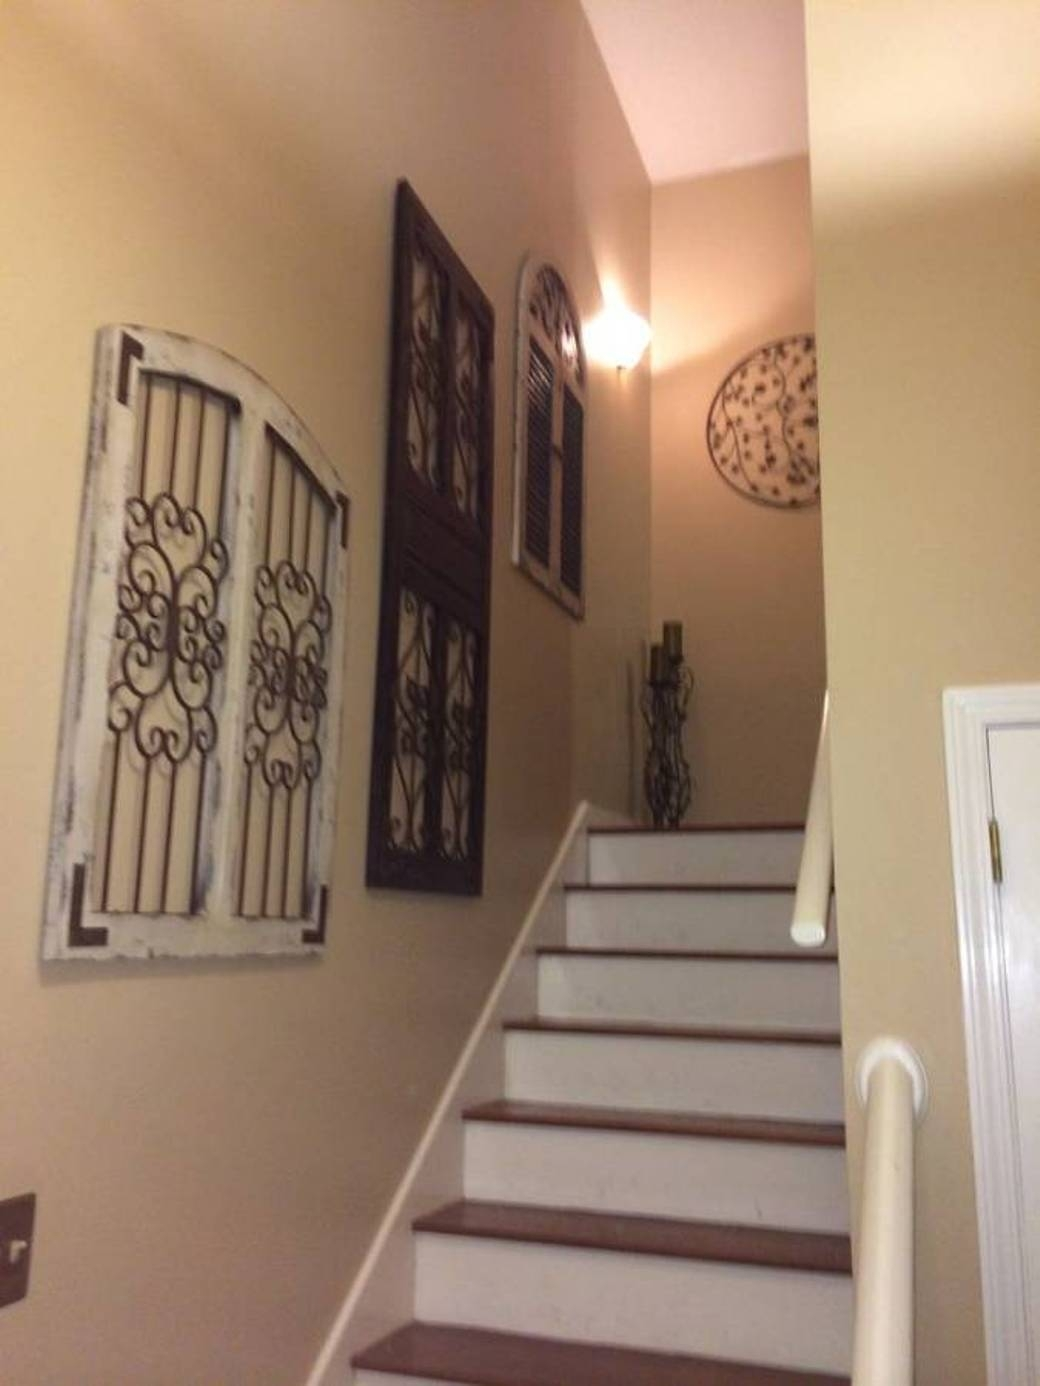 Charm Vintage Wall Decor For Interior Home | Home Decorations Spots Throughout Most Current Staircase Wall Accents (View 12 of 15)